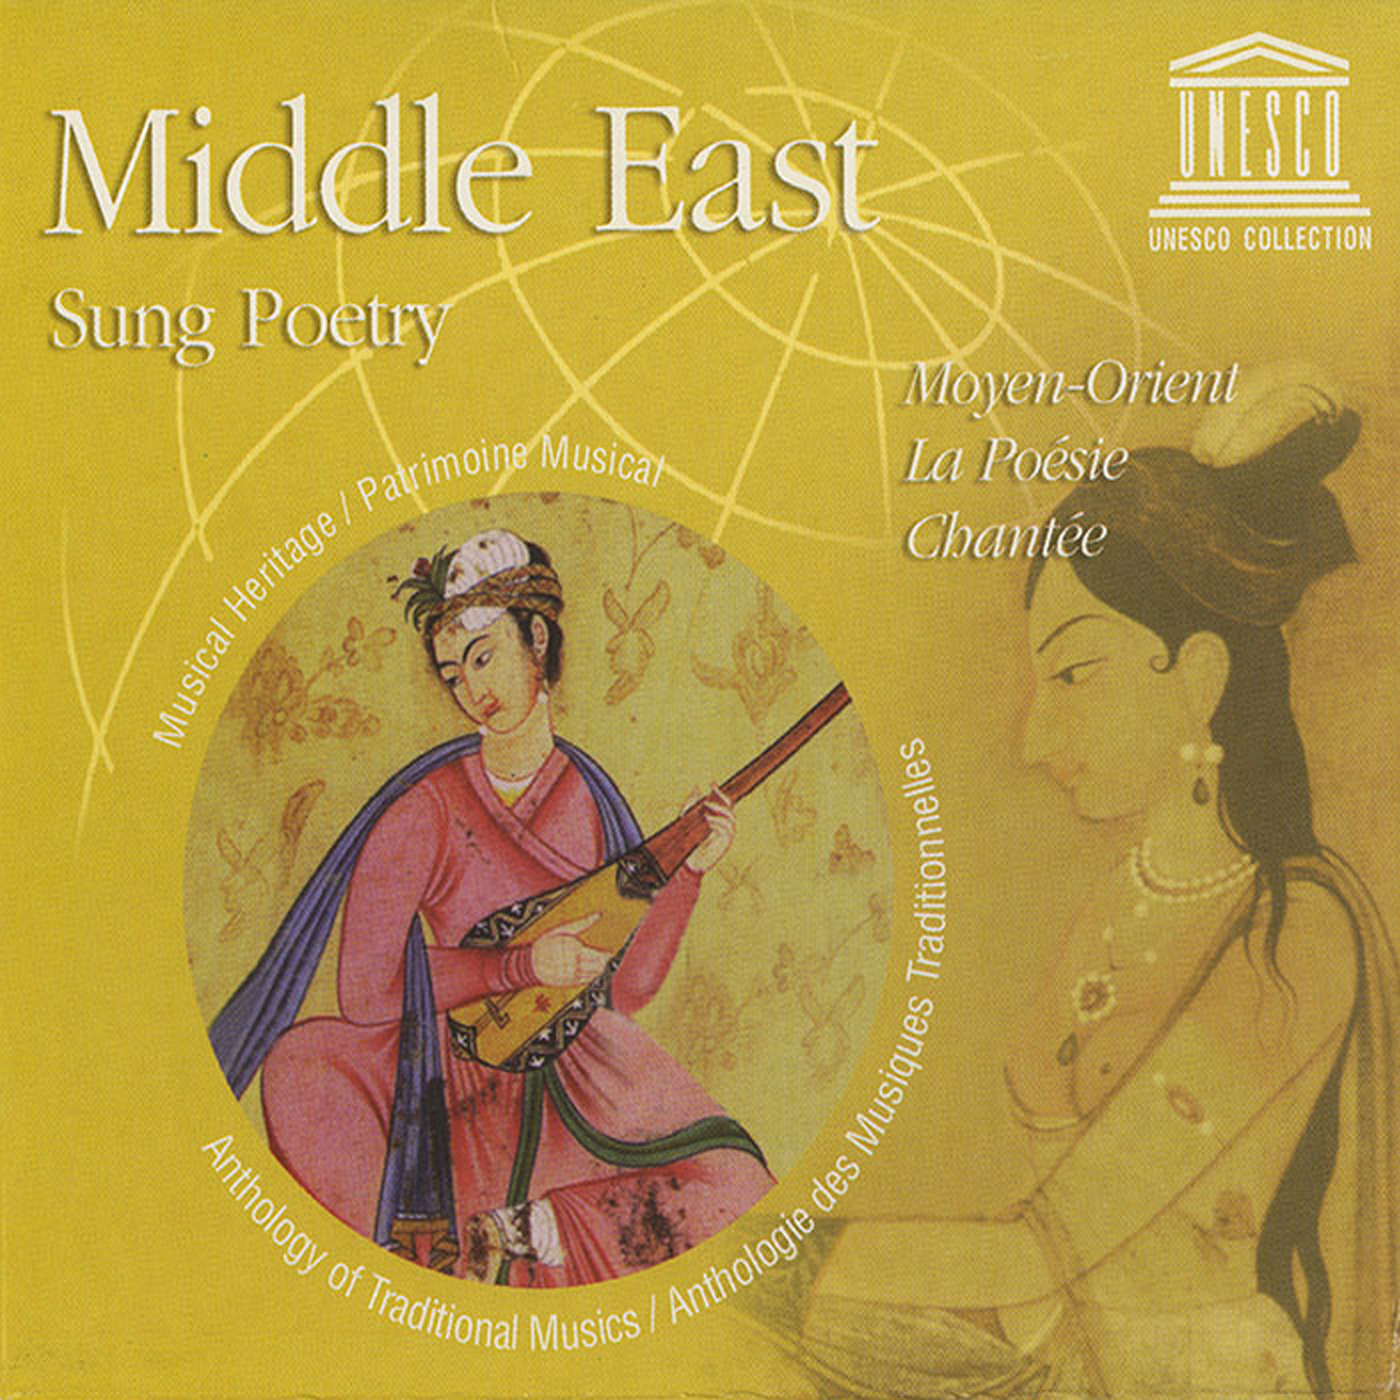 Middle East Sung Poetry Smithsonian Folkways Recordings